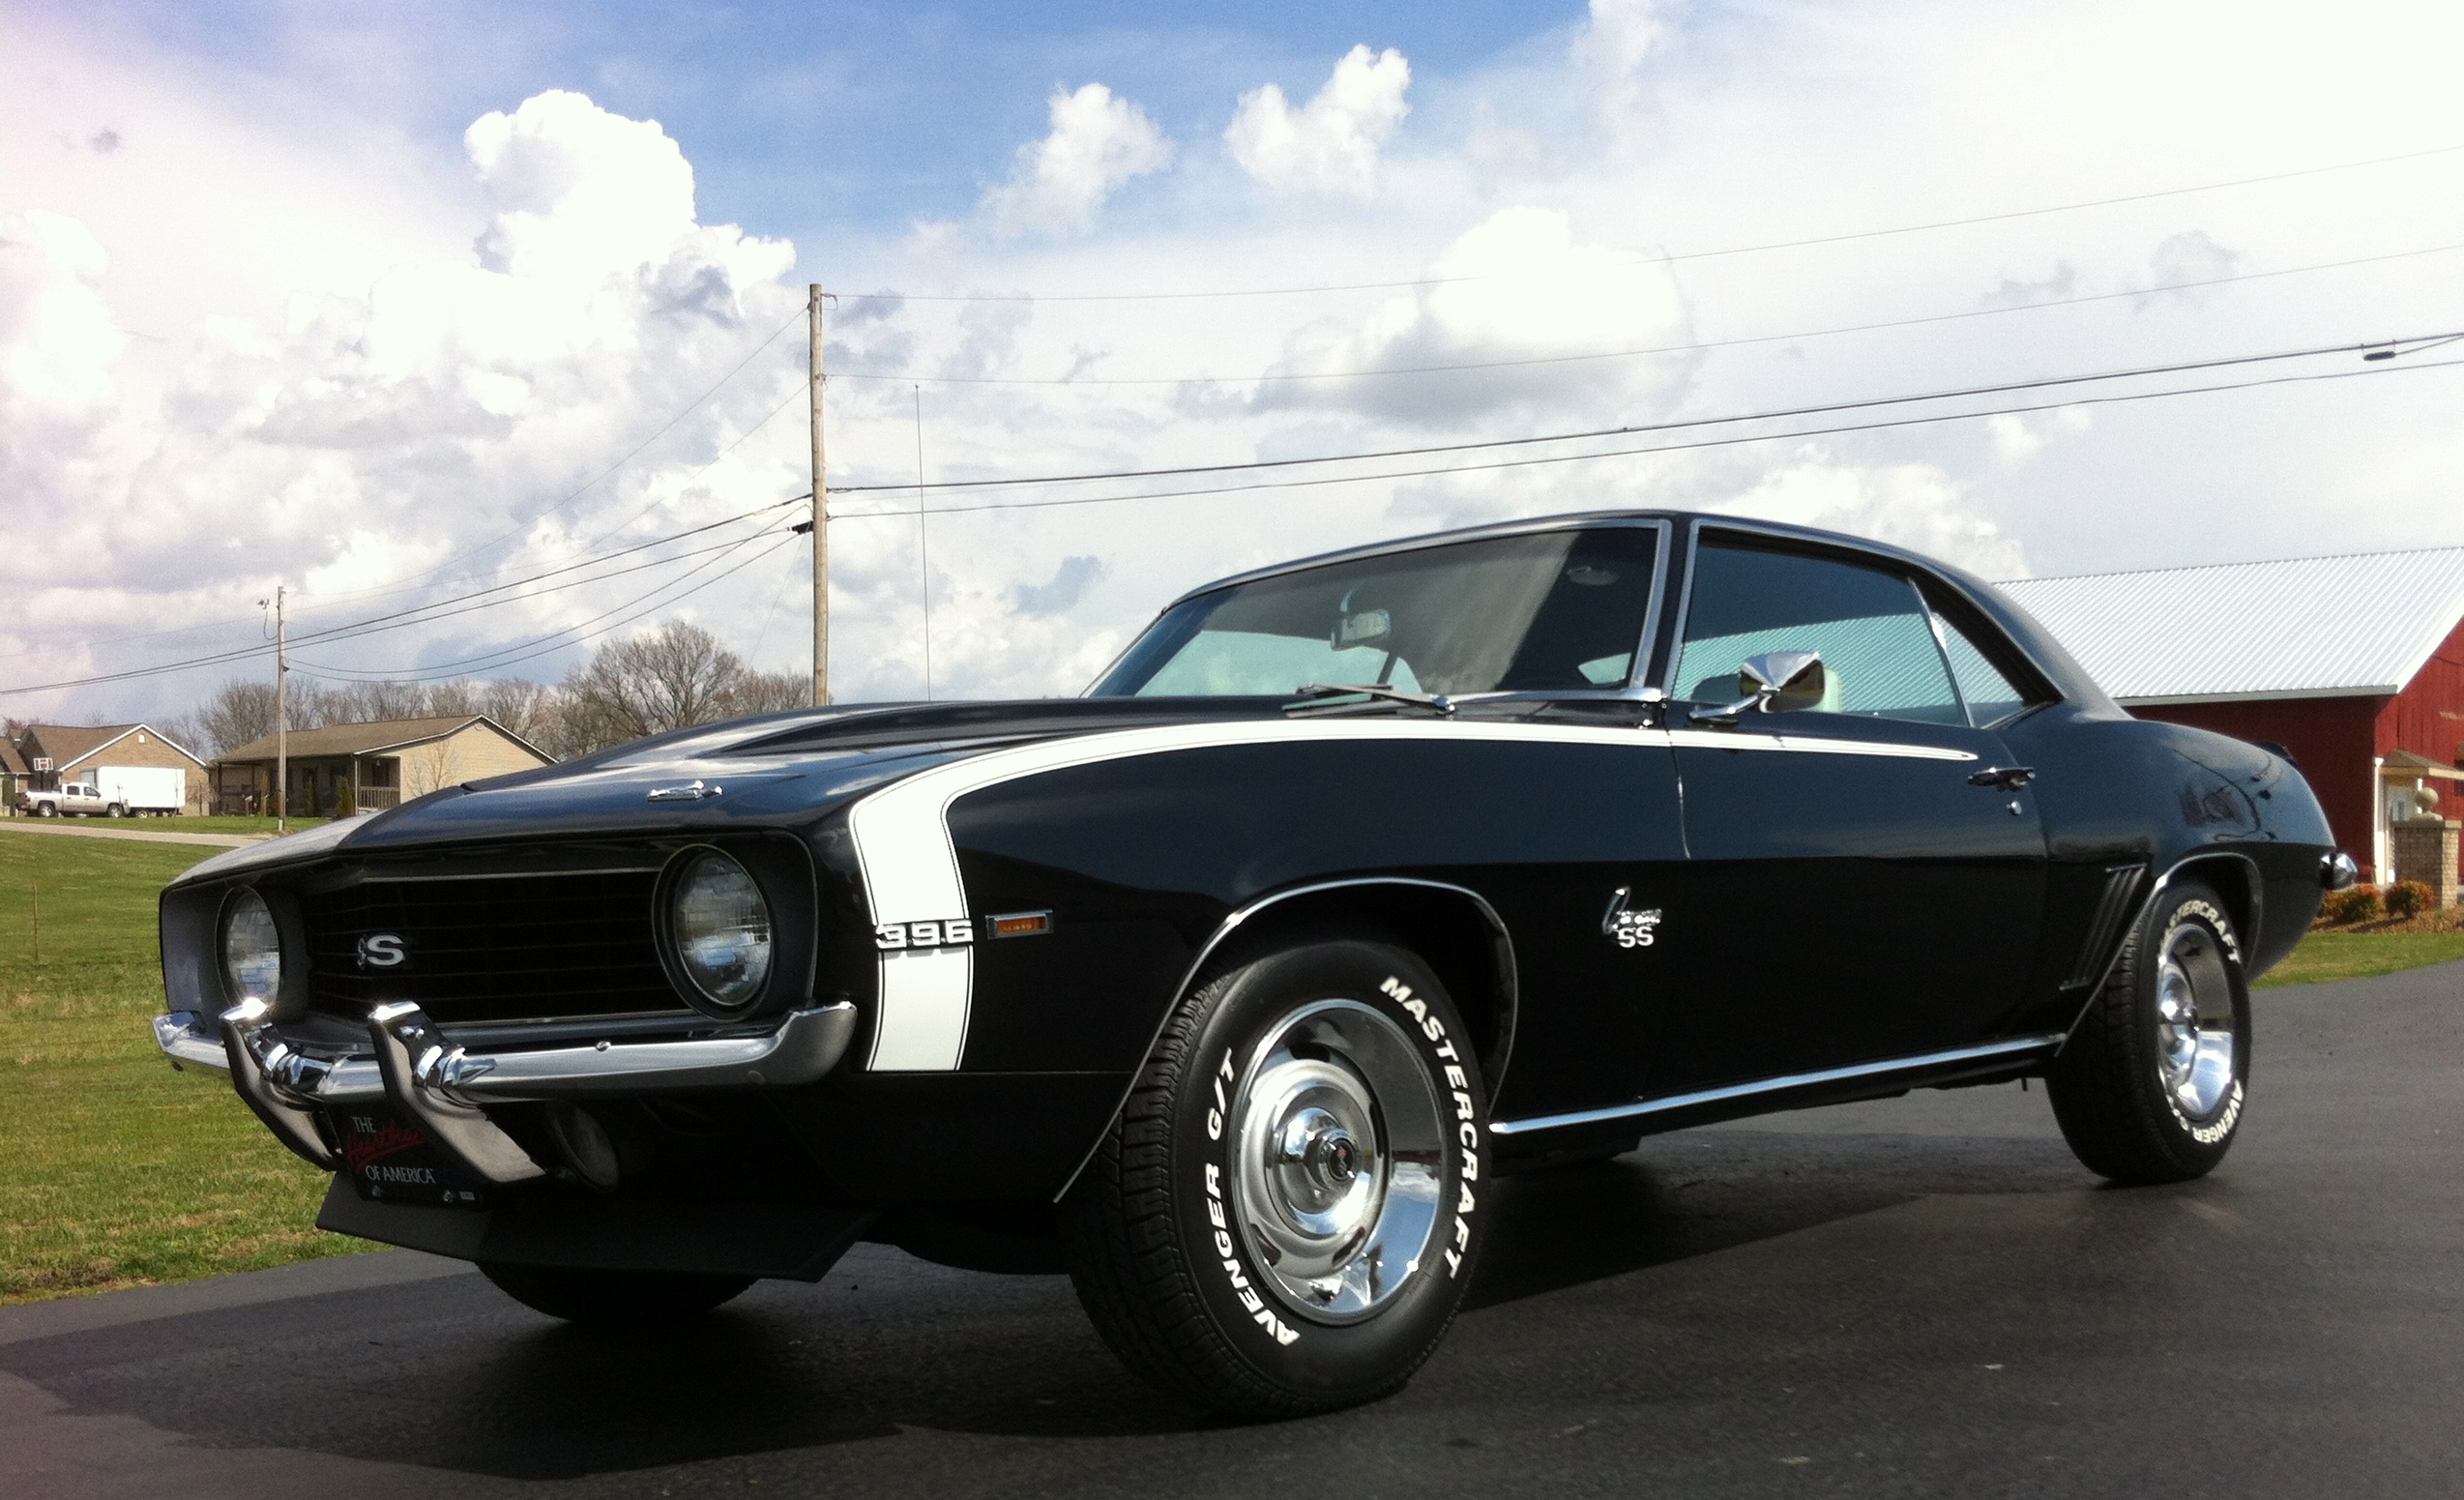 1969 camaro ss for sale flood car 3 000 autos post. Black Bedroom Furniture Sets. Home Design Ideas